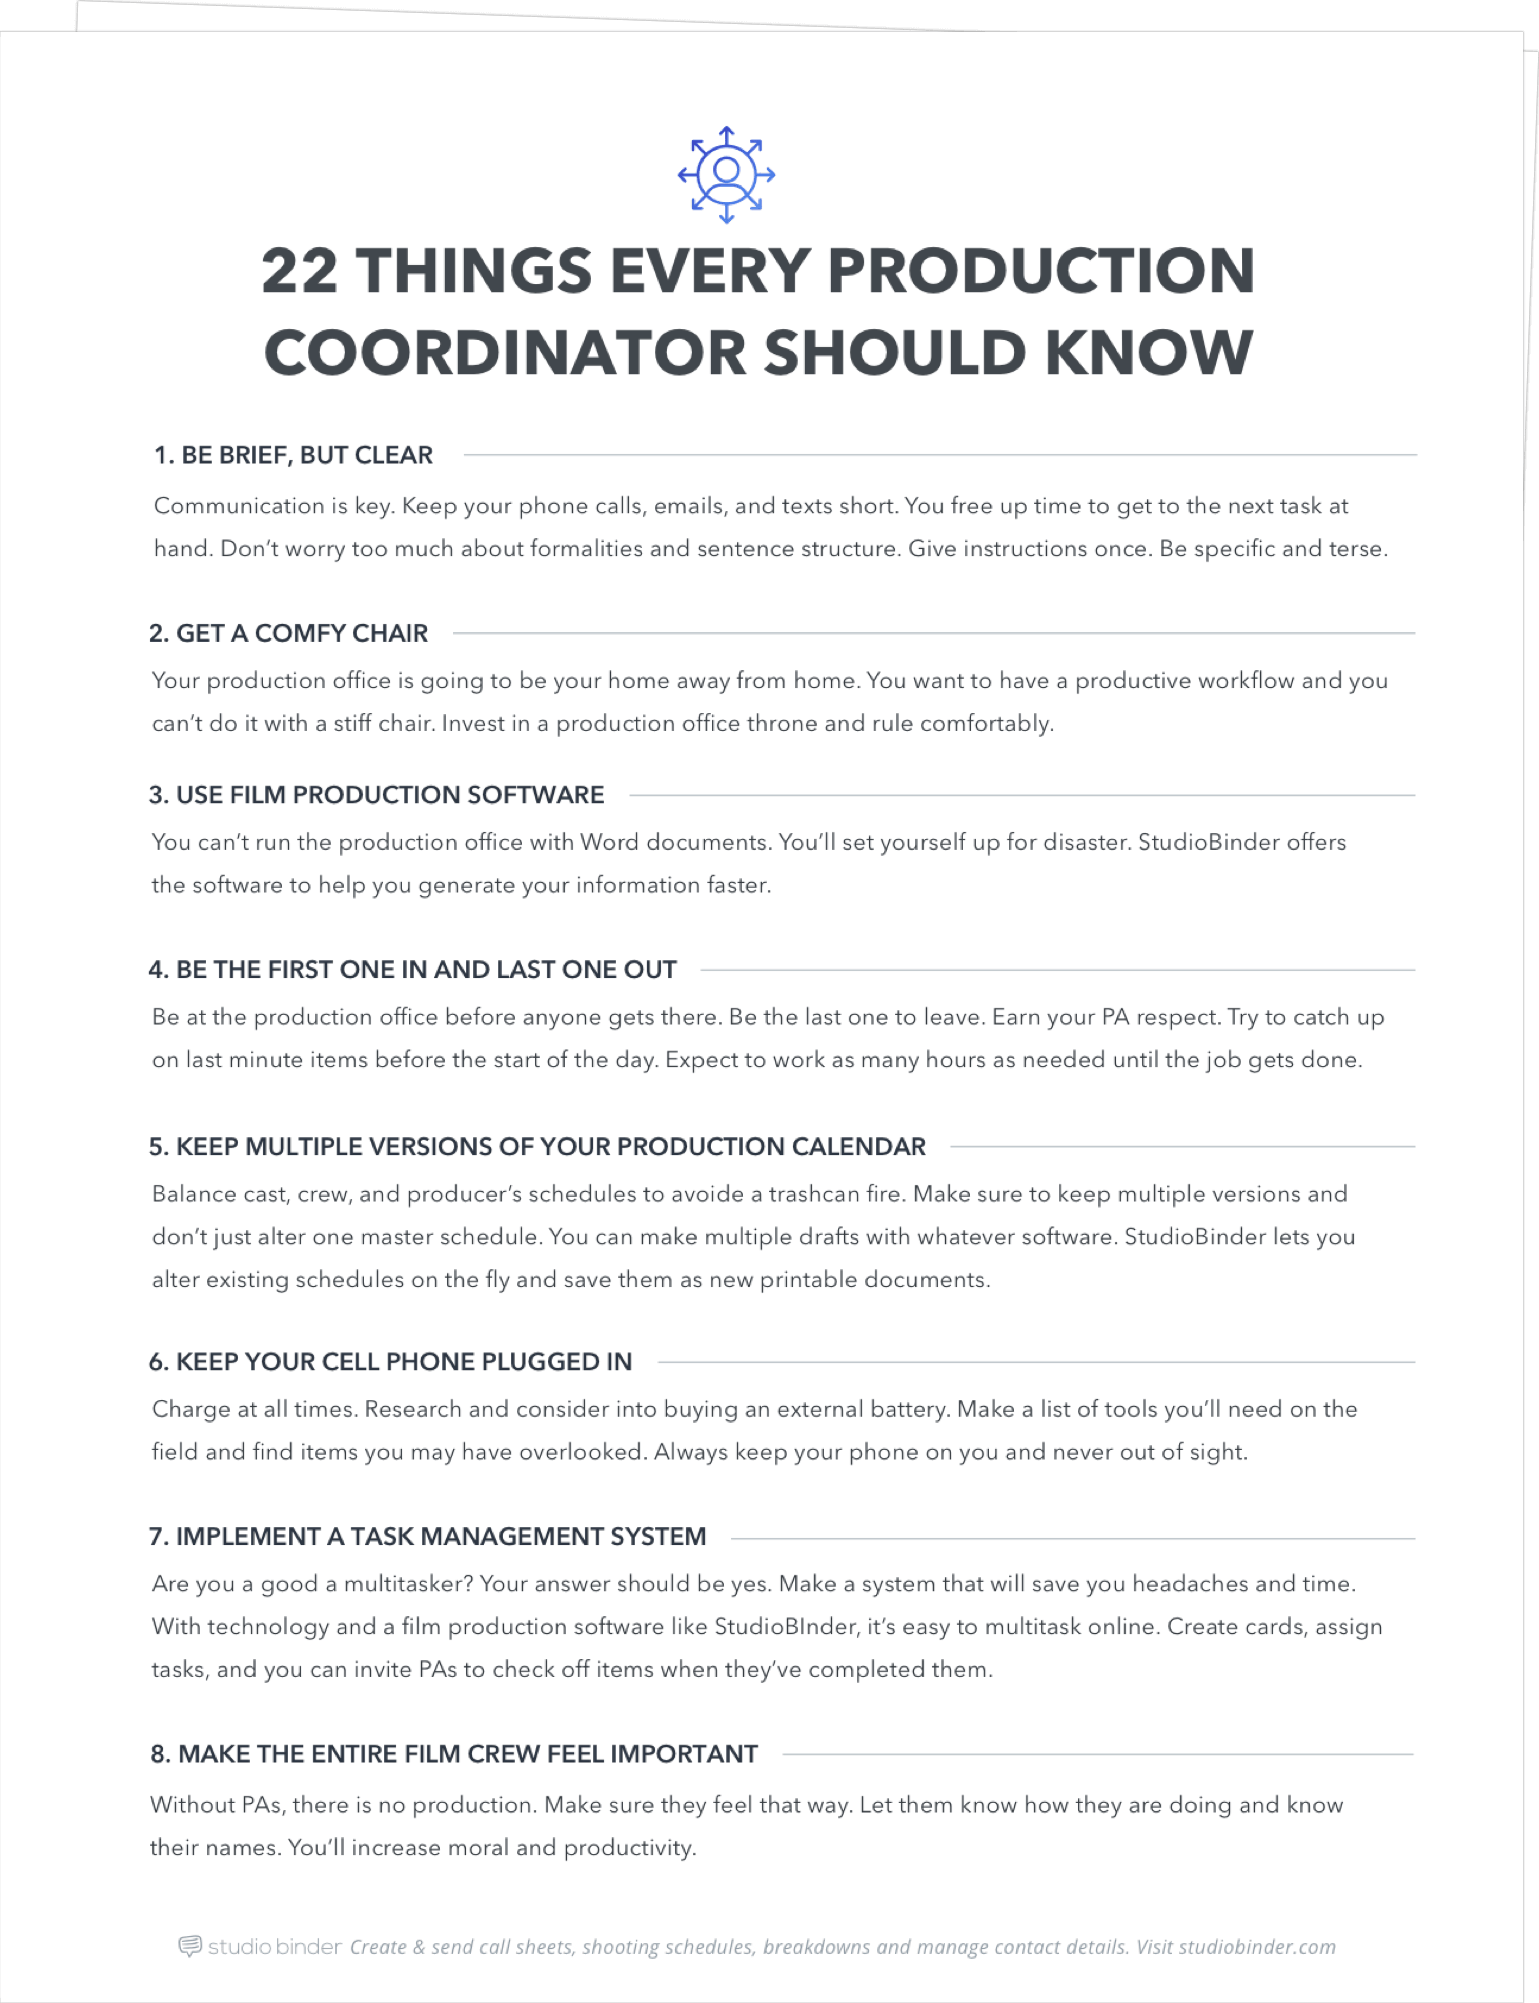 22 Things Every Working Production Coordinator Should Know - Page Stack - StudioBinder